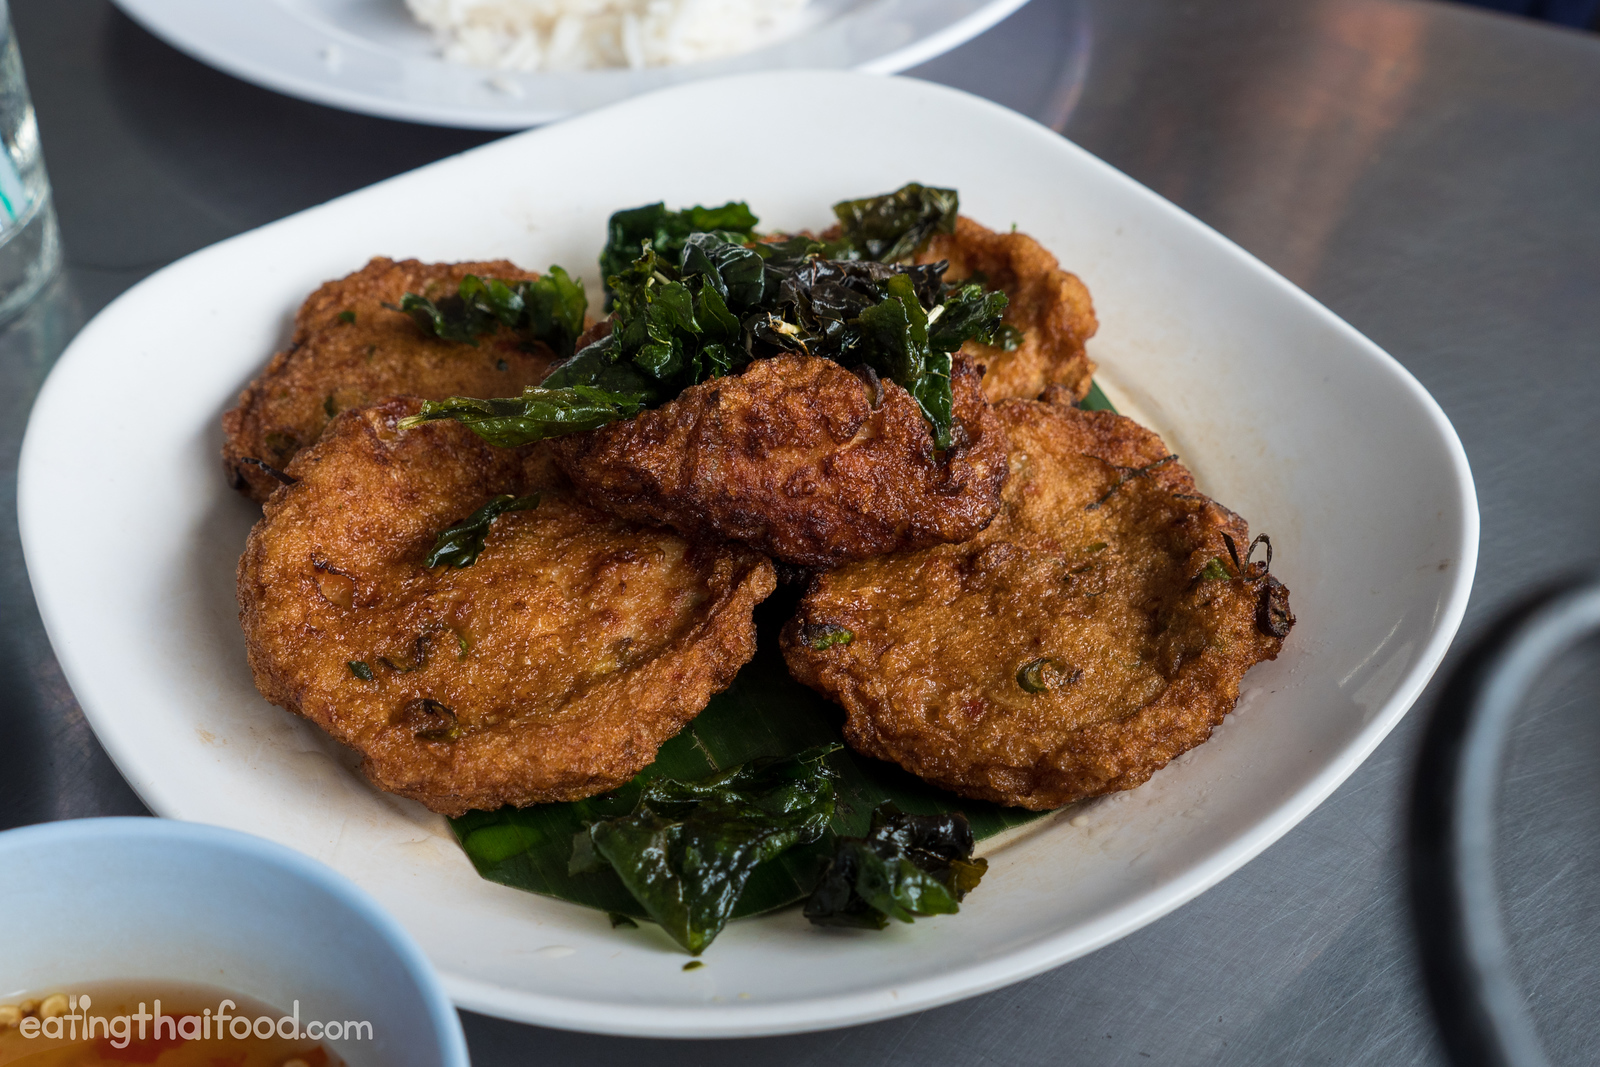 Thai fried fish-cakes